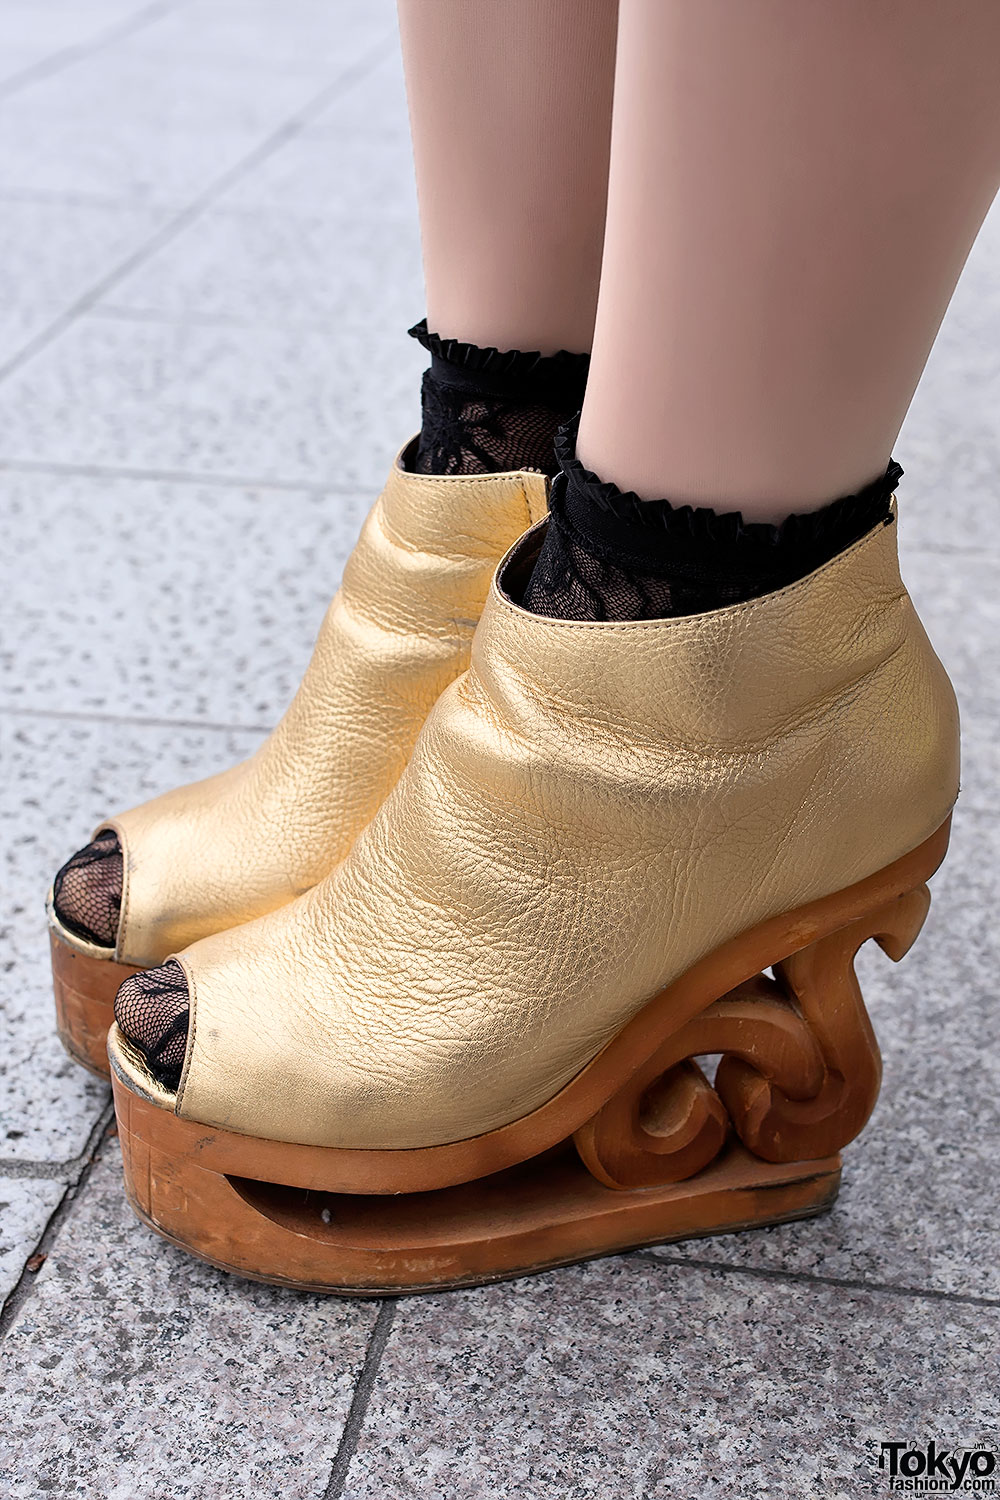 Green Under Dyed Hair Amp Gold Jeffrey Cambell Skate